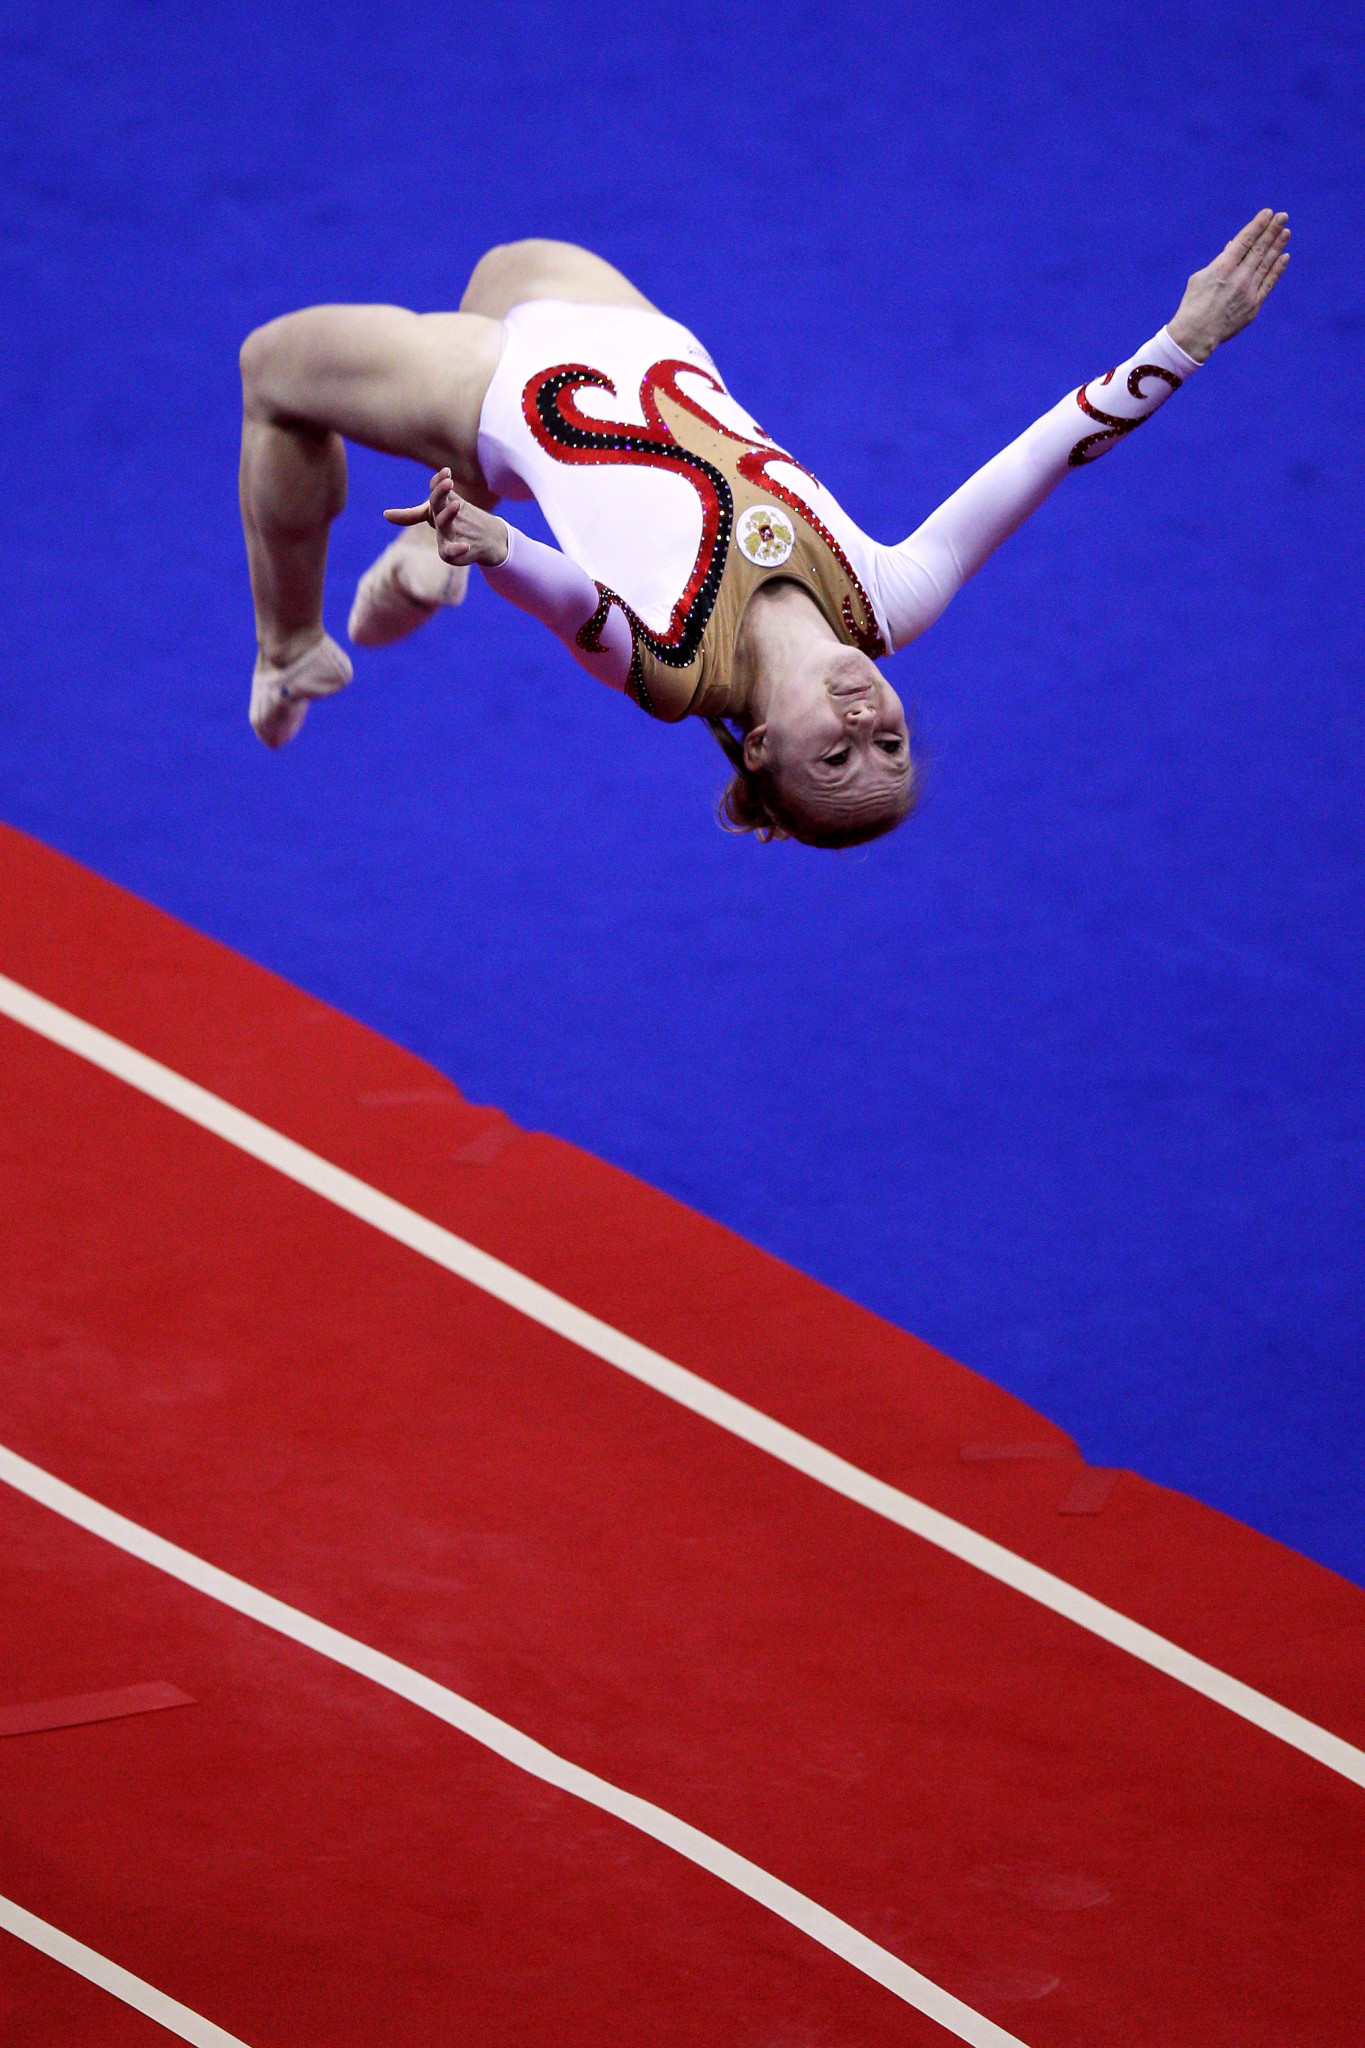 Anna Korobeynikova, who took her first world tumbling title with the Russian team back in 1998, will aim to defend her European title in Baku this weekend ©Getty Images